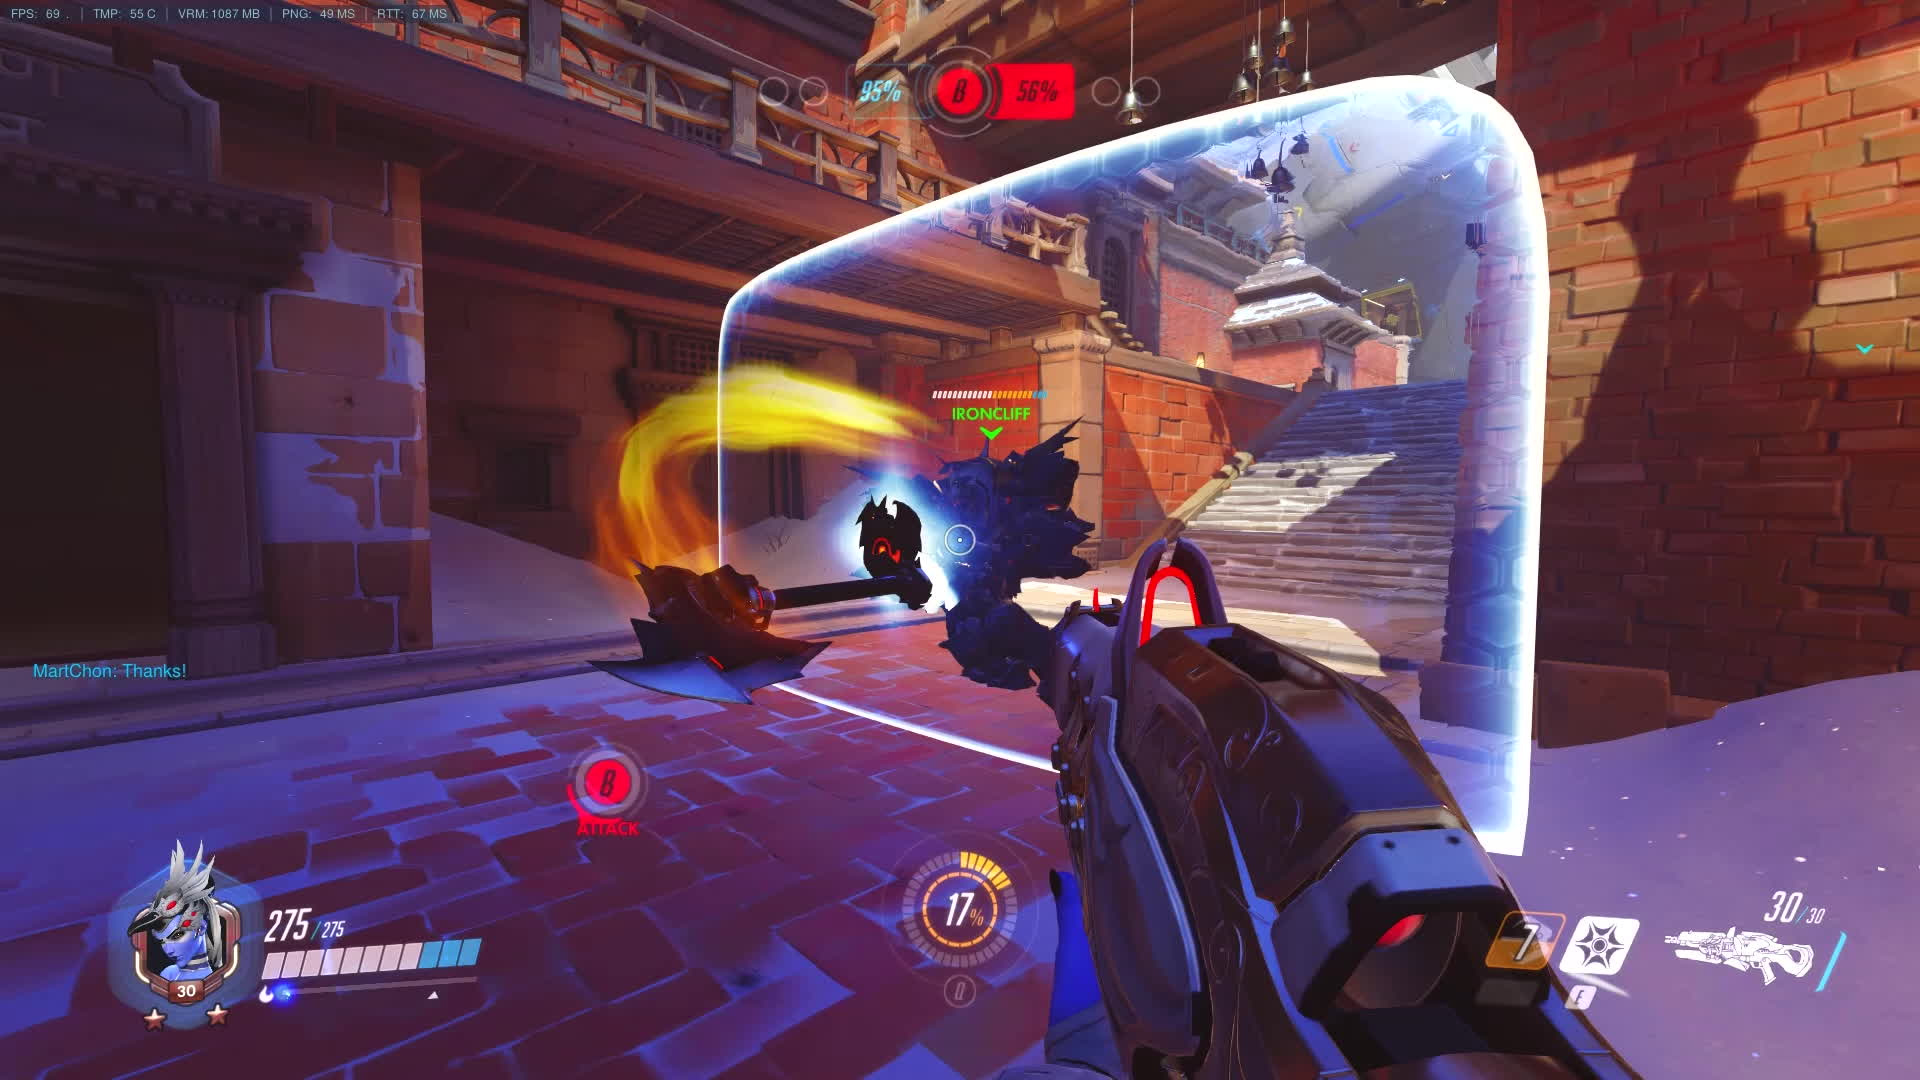 imagesofthe2000s, overwatch, Rein keeps swingin with his shield GIFs